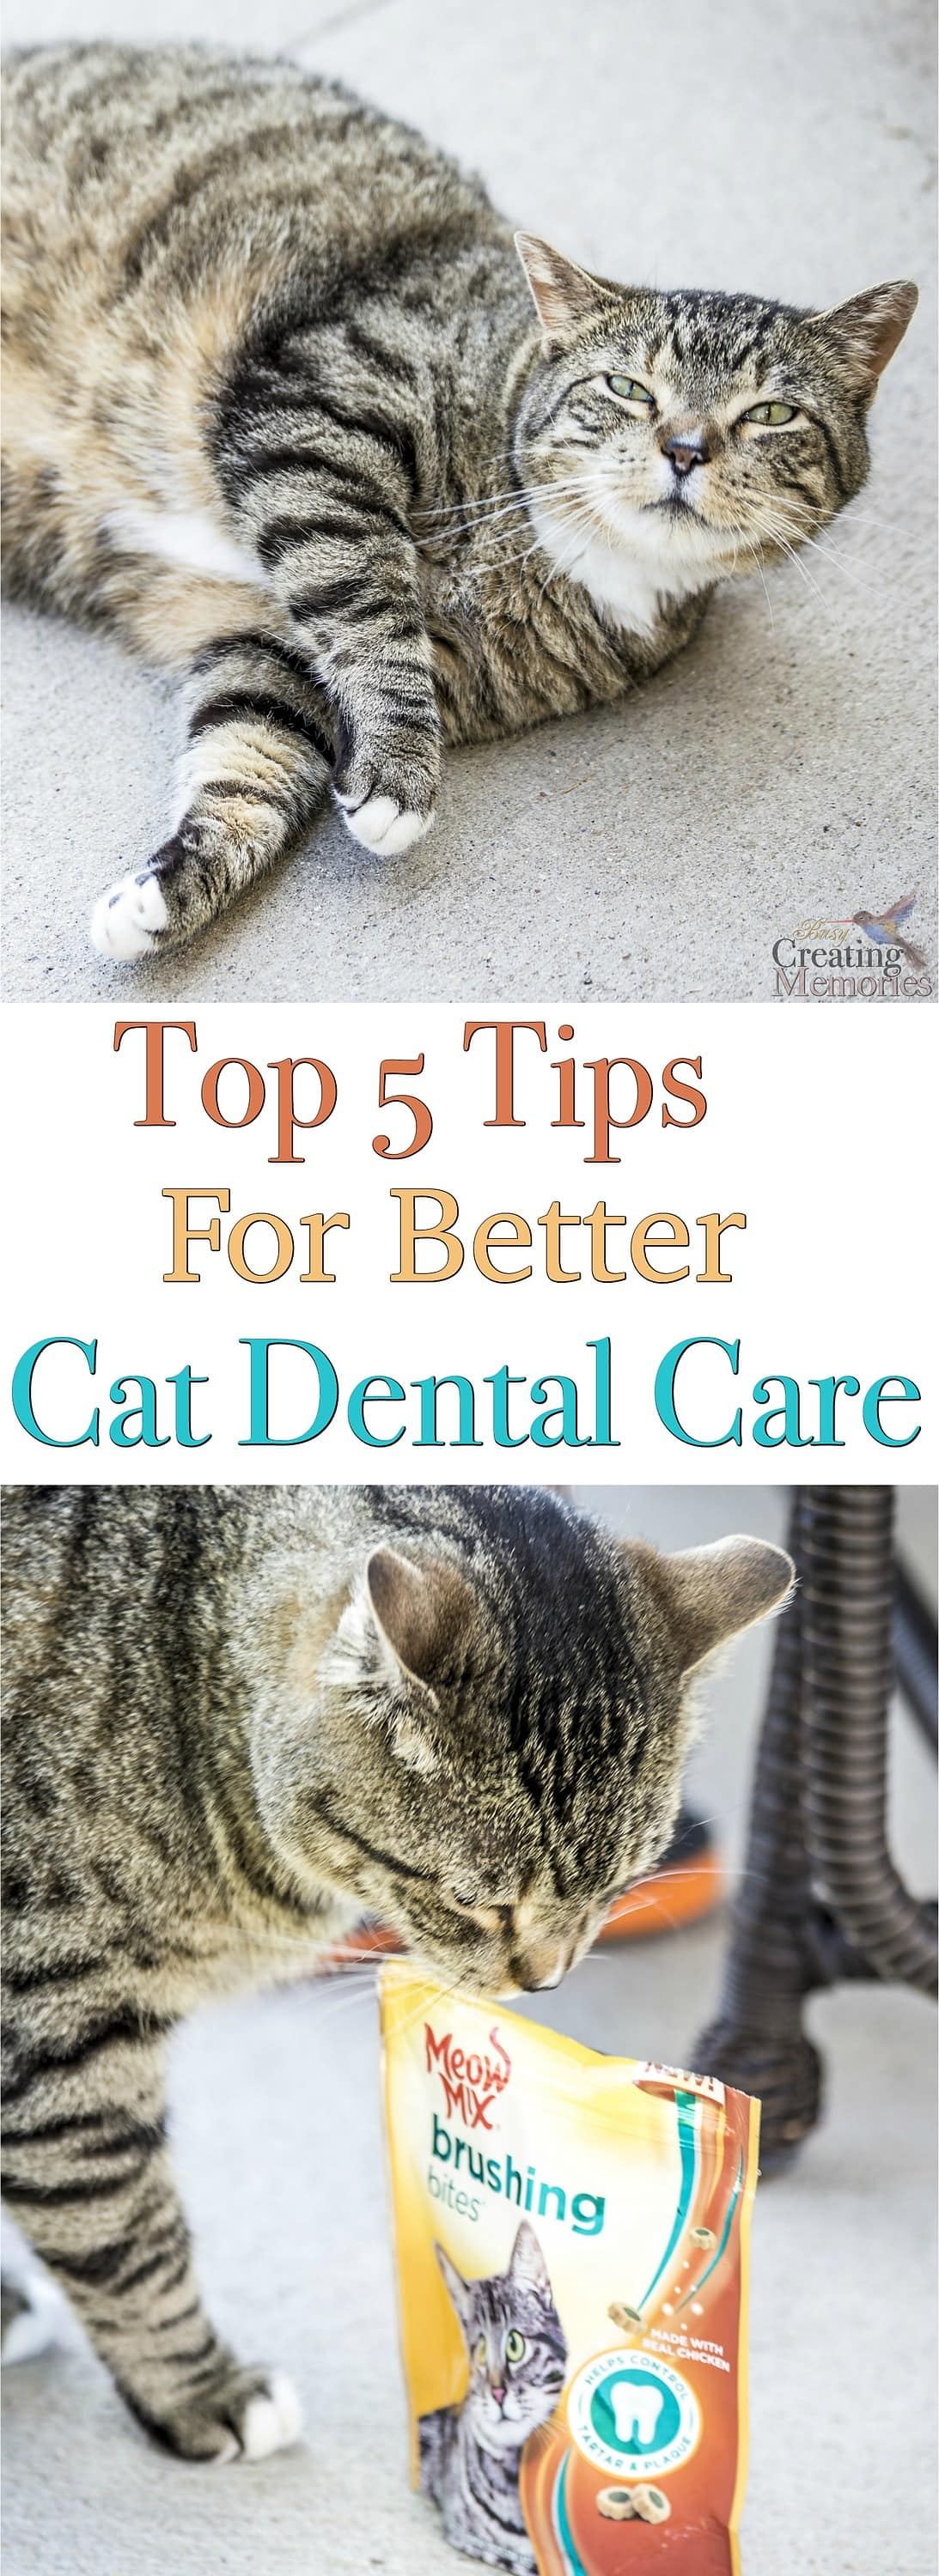 Ensure your cat has the best! Cat Dental Care affects their health. Follow these top 5 tips to ensure a happy and healthy furry friend.